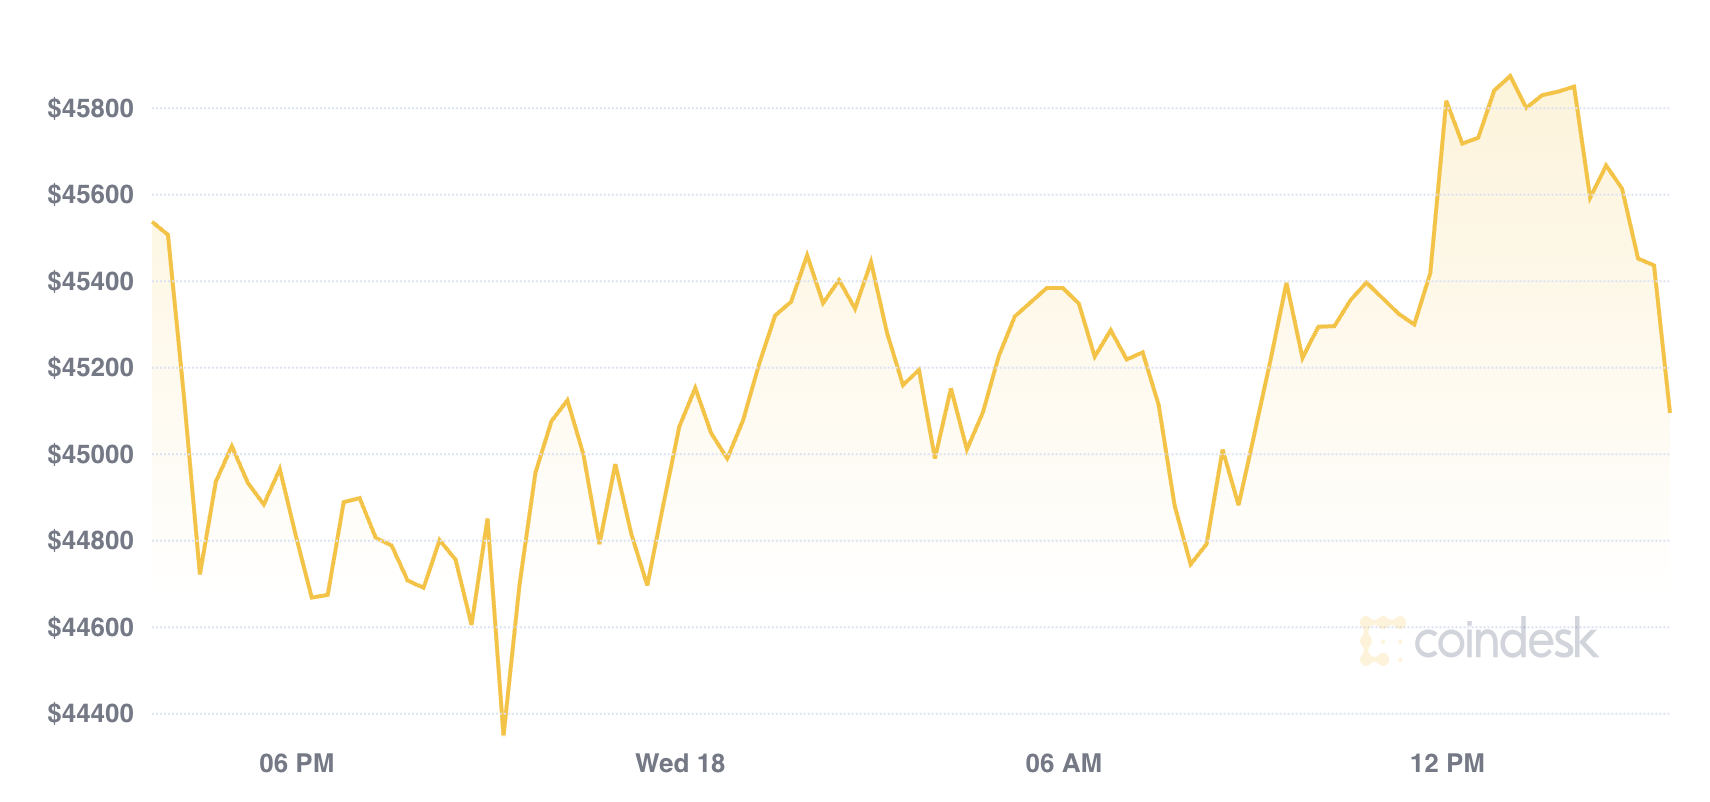 Market Wrap: Bitcoin Trades Sideways as Institutional Demand Expected to Rise